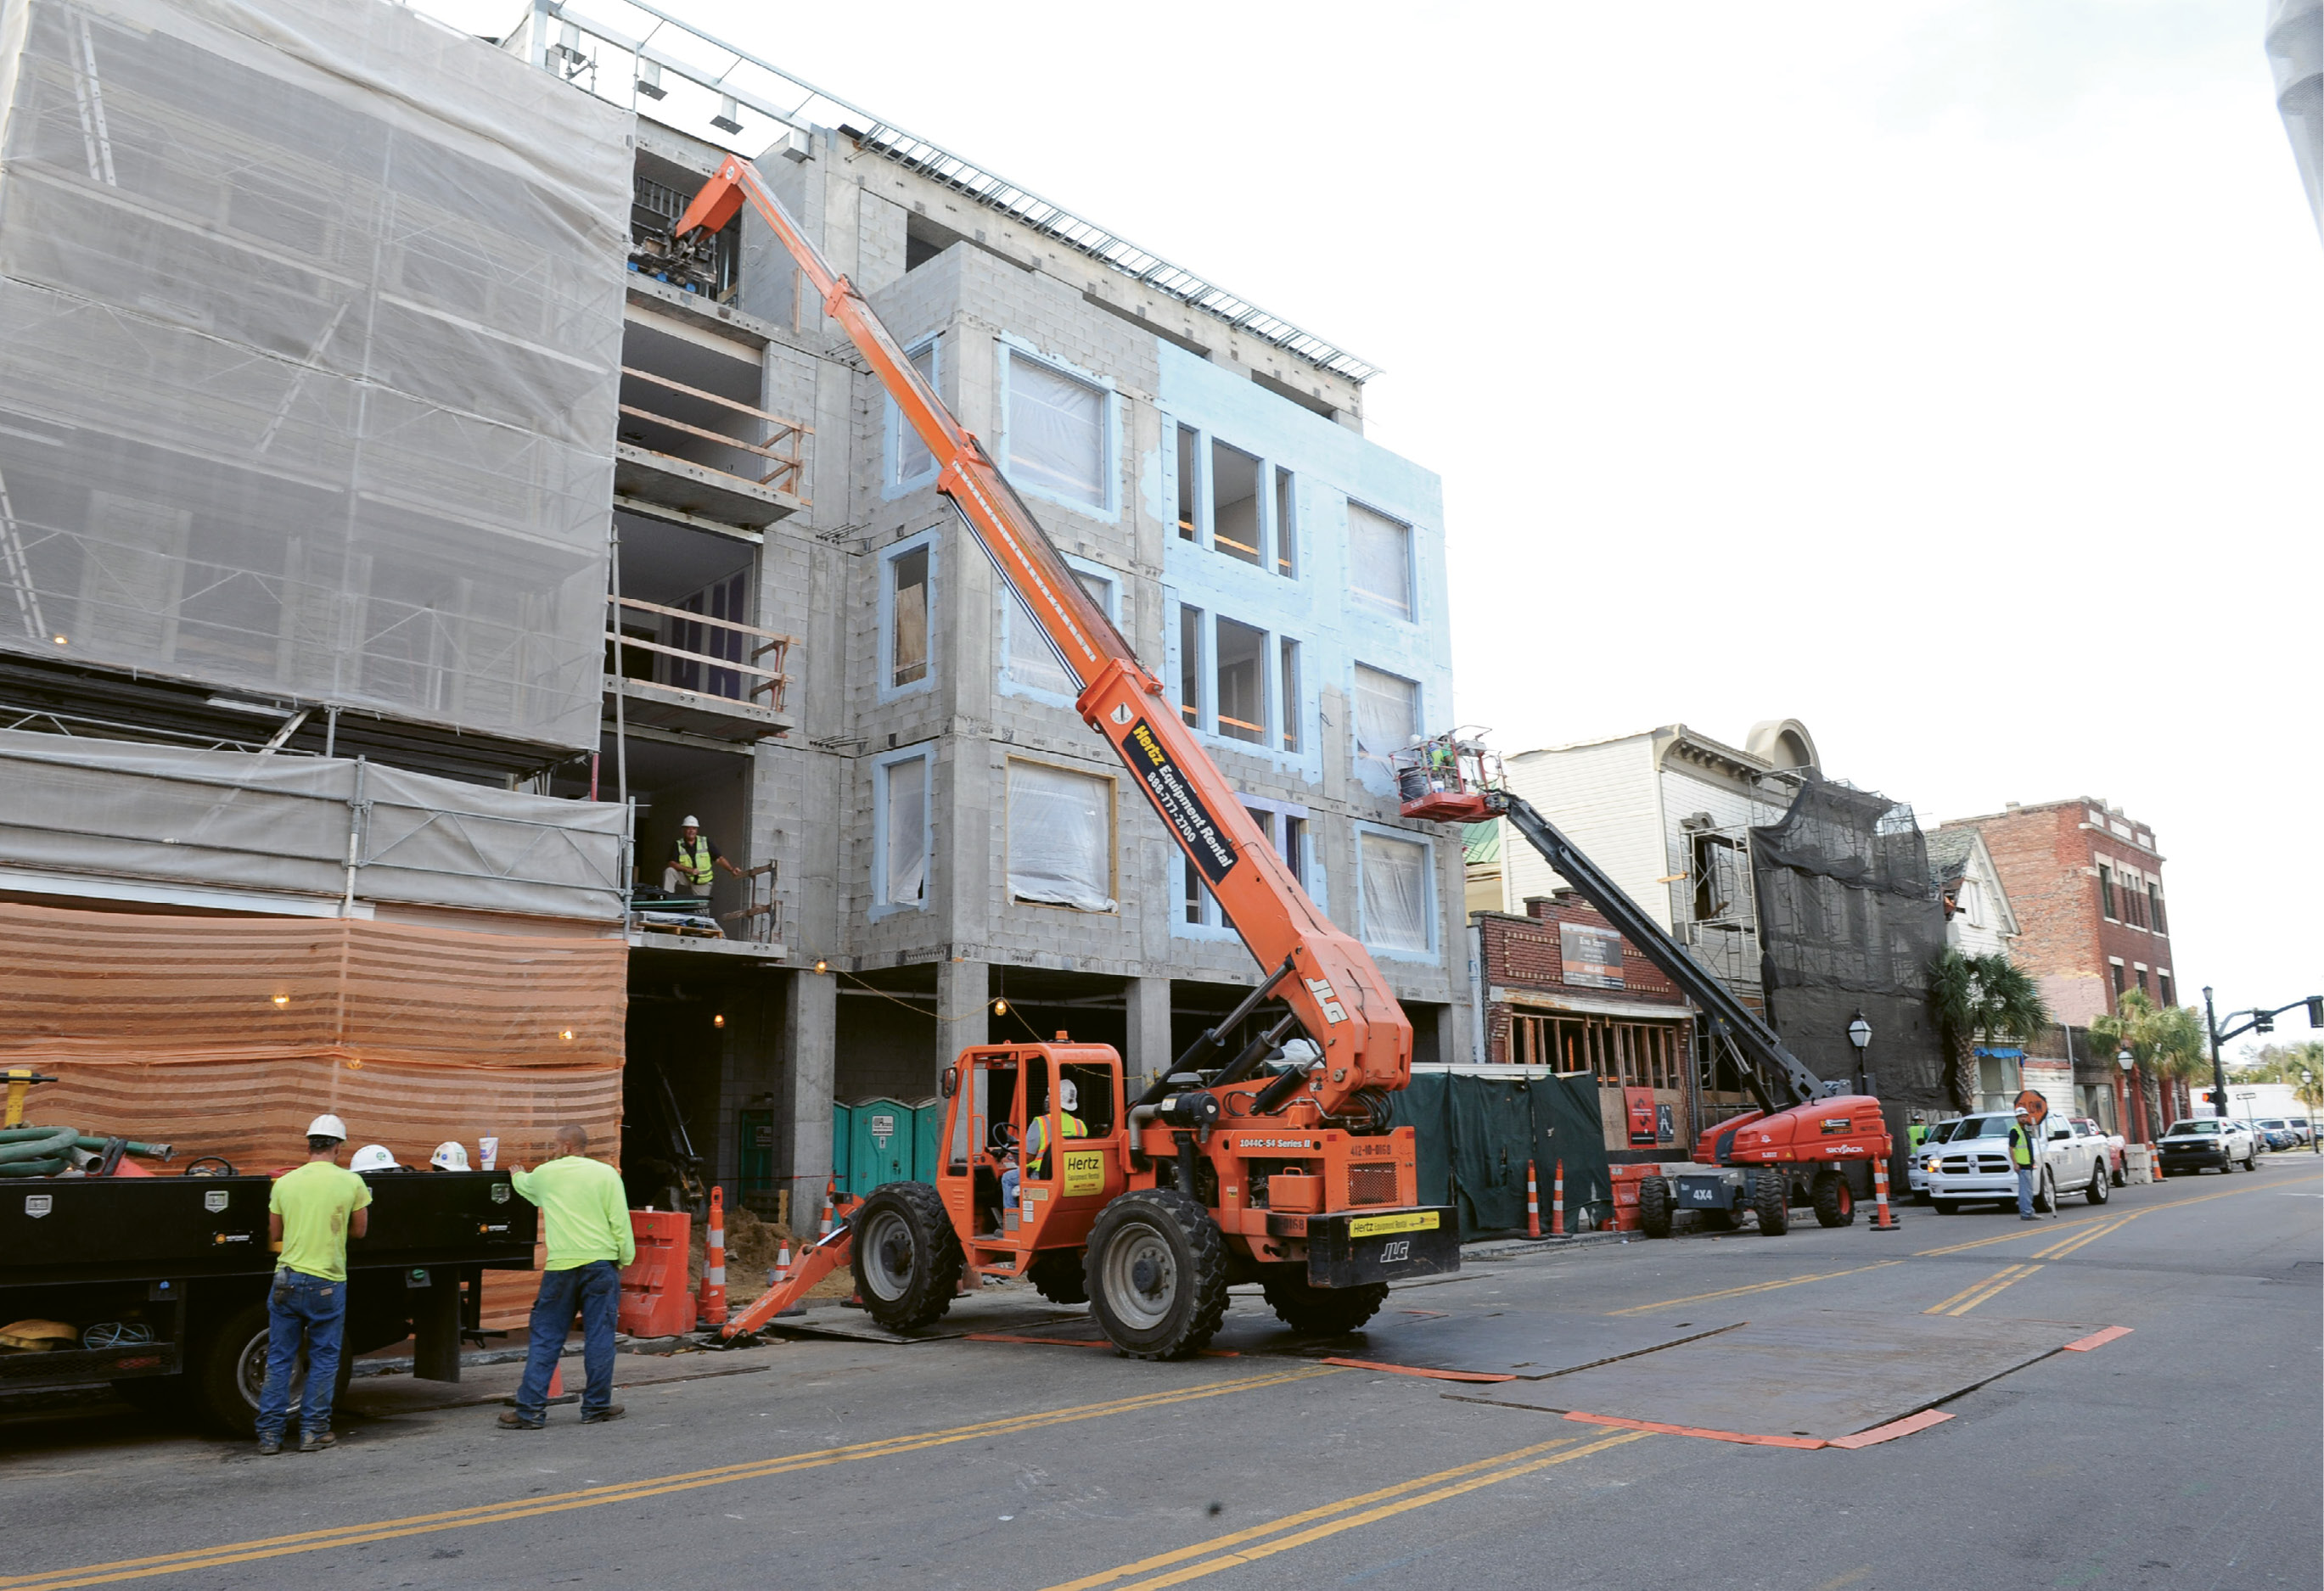 A 54-room hotel goes up on a former vacant lot on upper King, across the street from the Hyatt House/Hyatt Place properties, which opened in September 2015 with a combined 304 rooms, meeting spaces, and a parking garage.